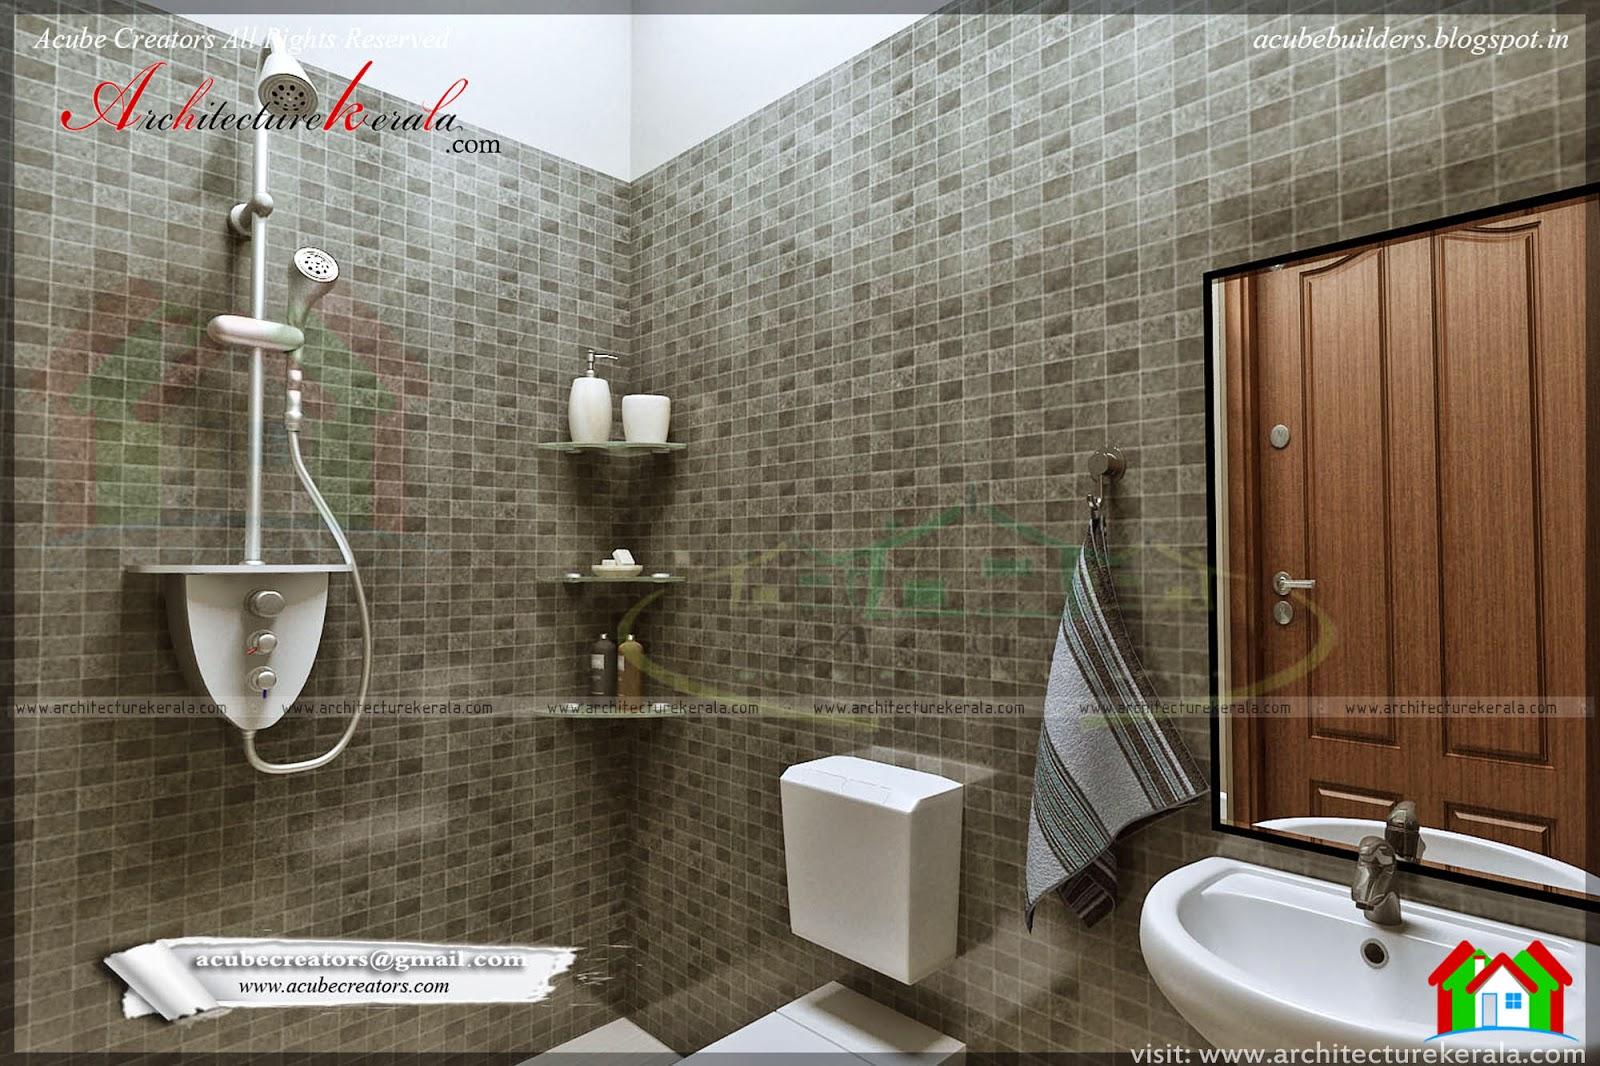 Bathroom interior design architecture kerala for Bathroom designs in kerala